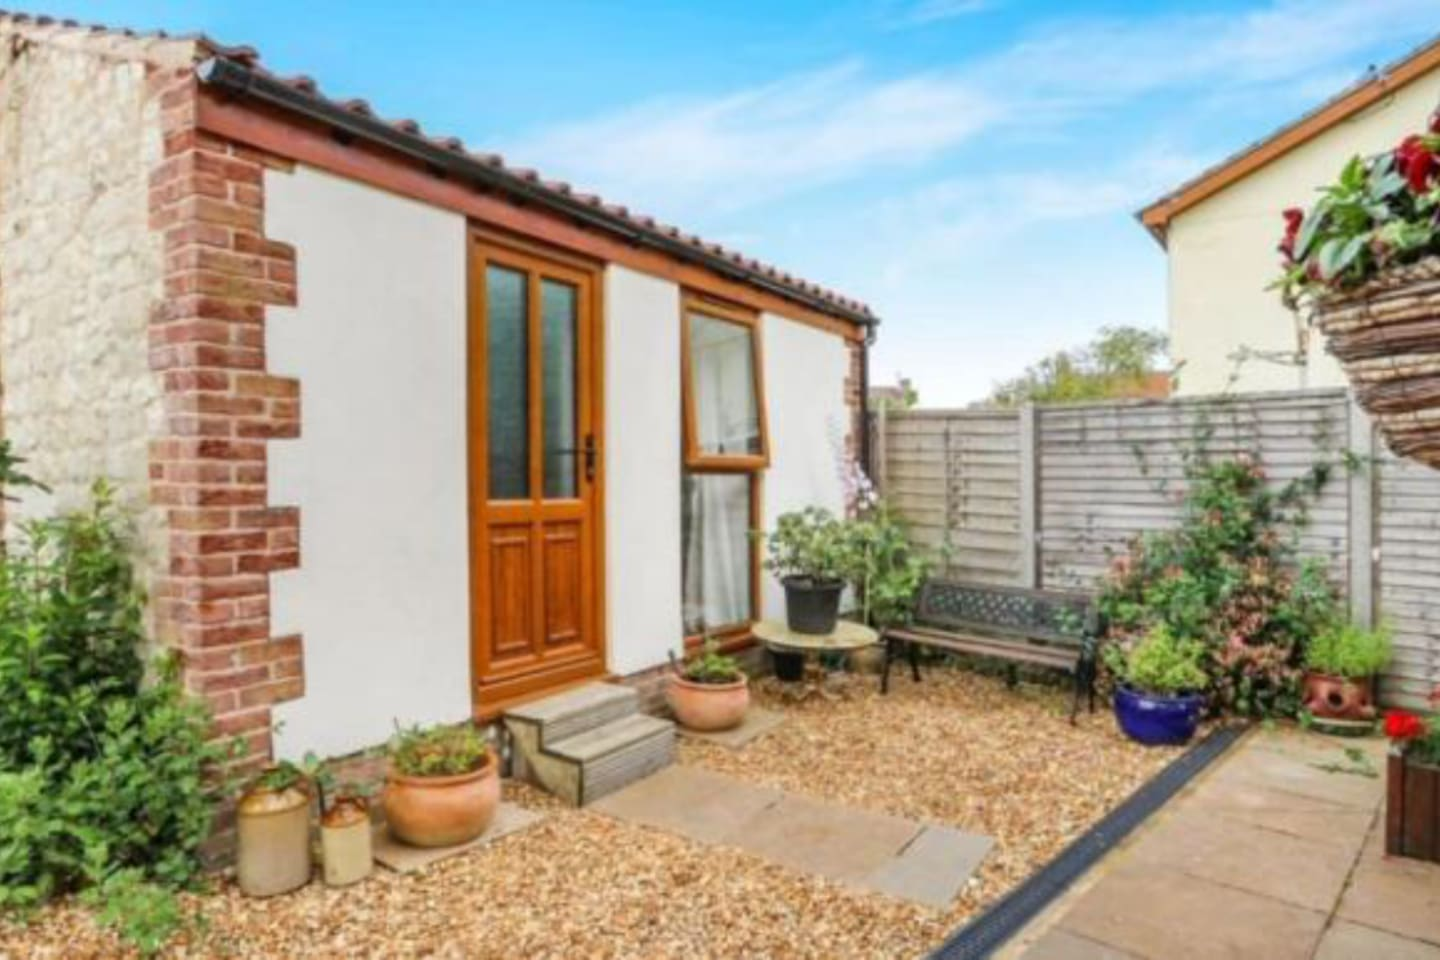 Detached annex with own private entrance